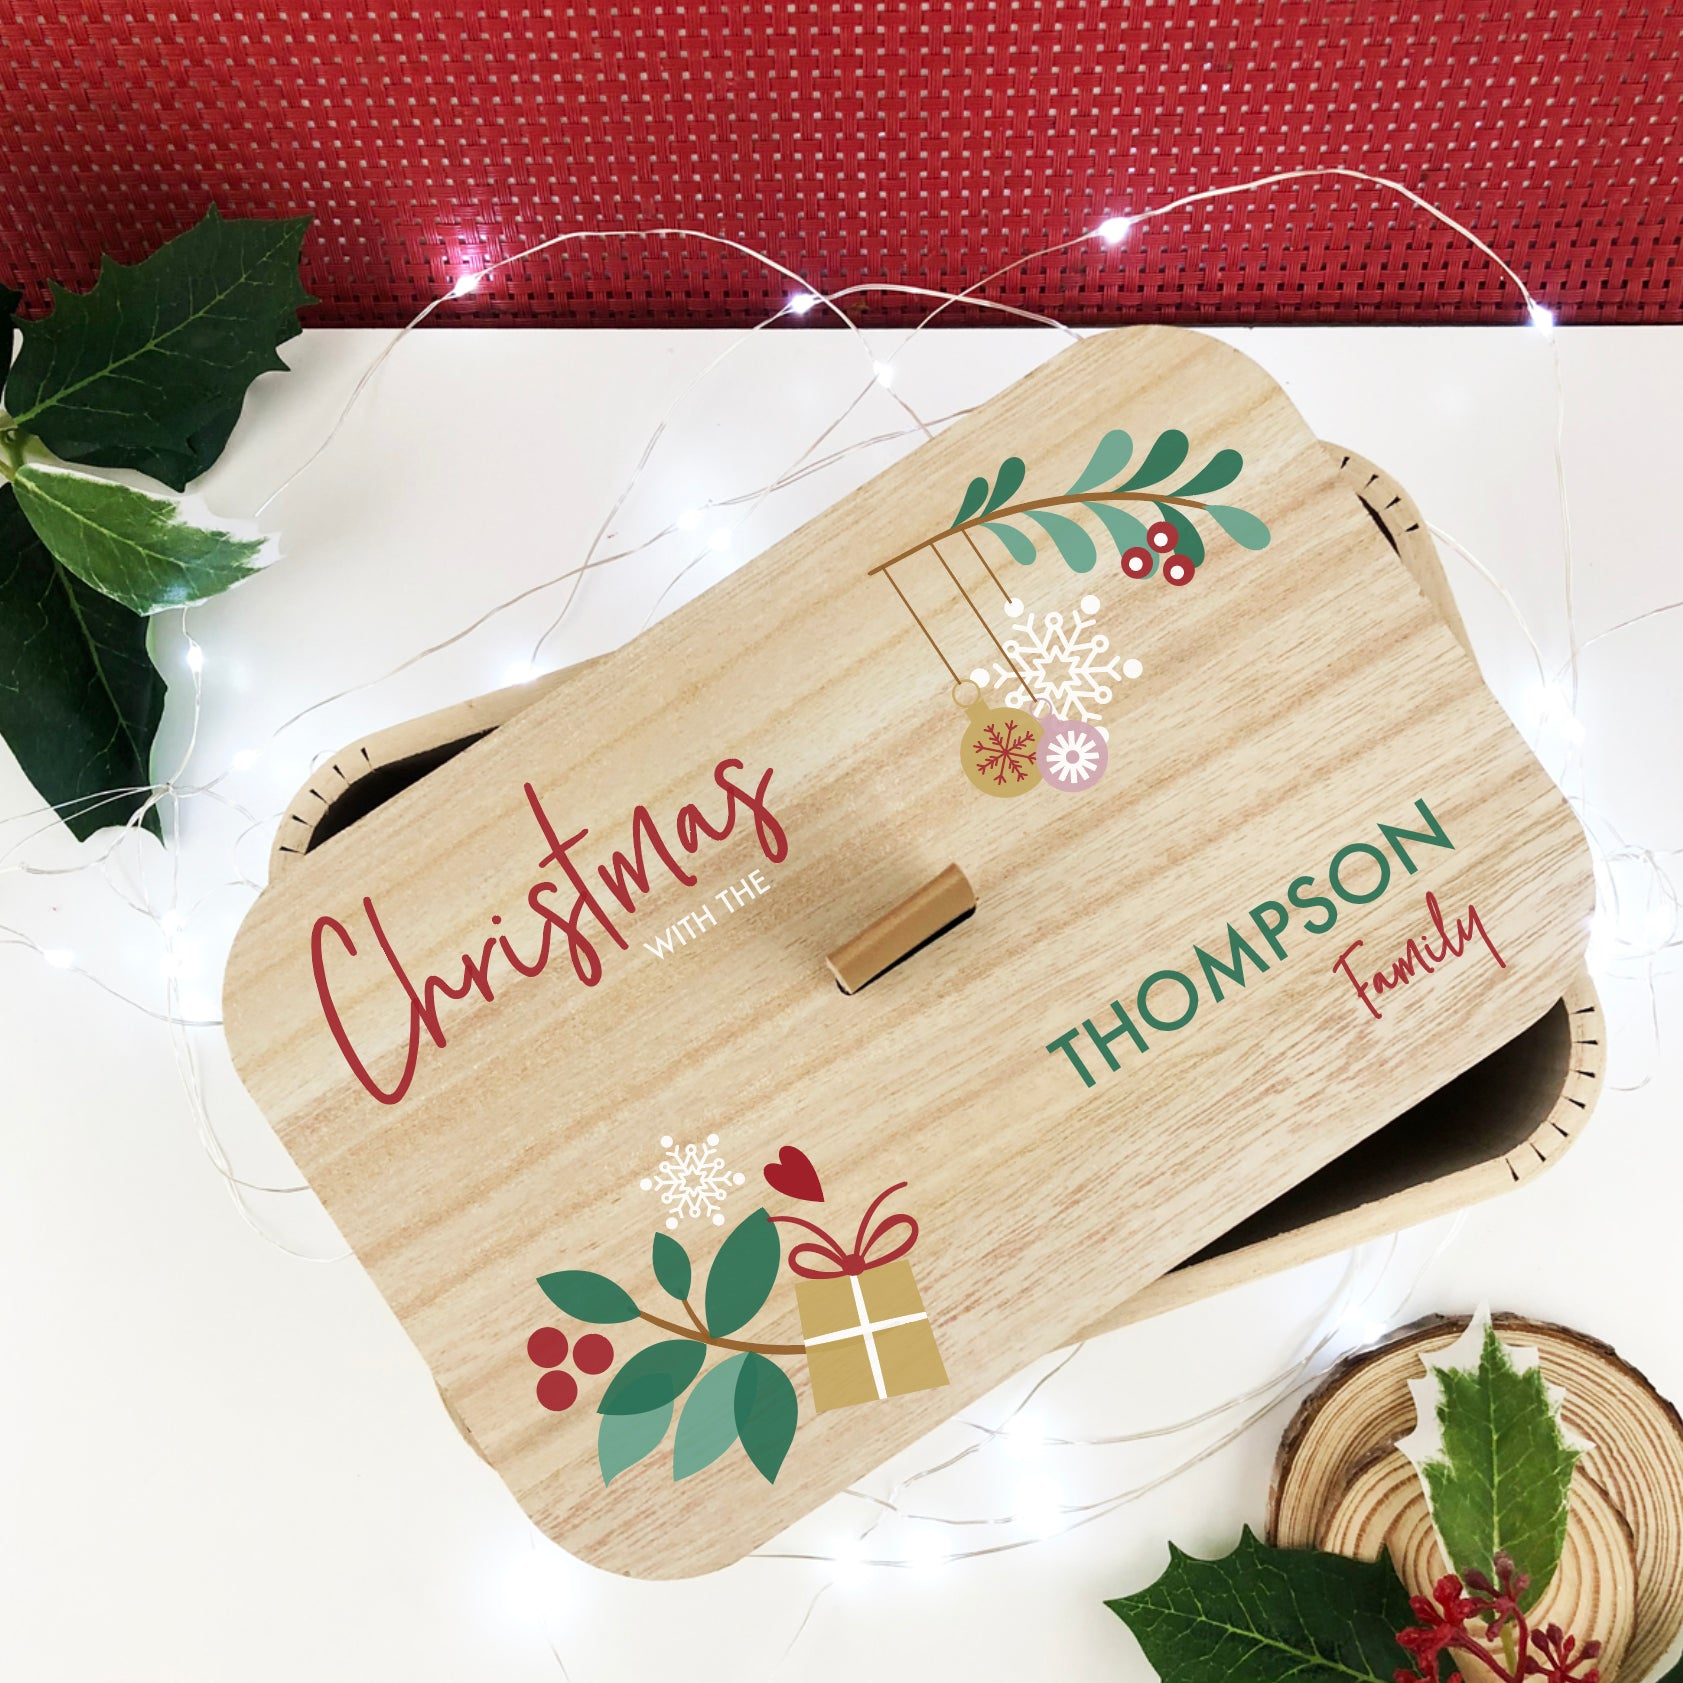 Personalised Festive Ornaments Christmas Box (2 sizes)